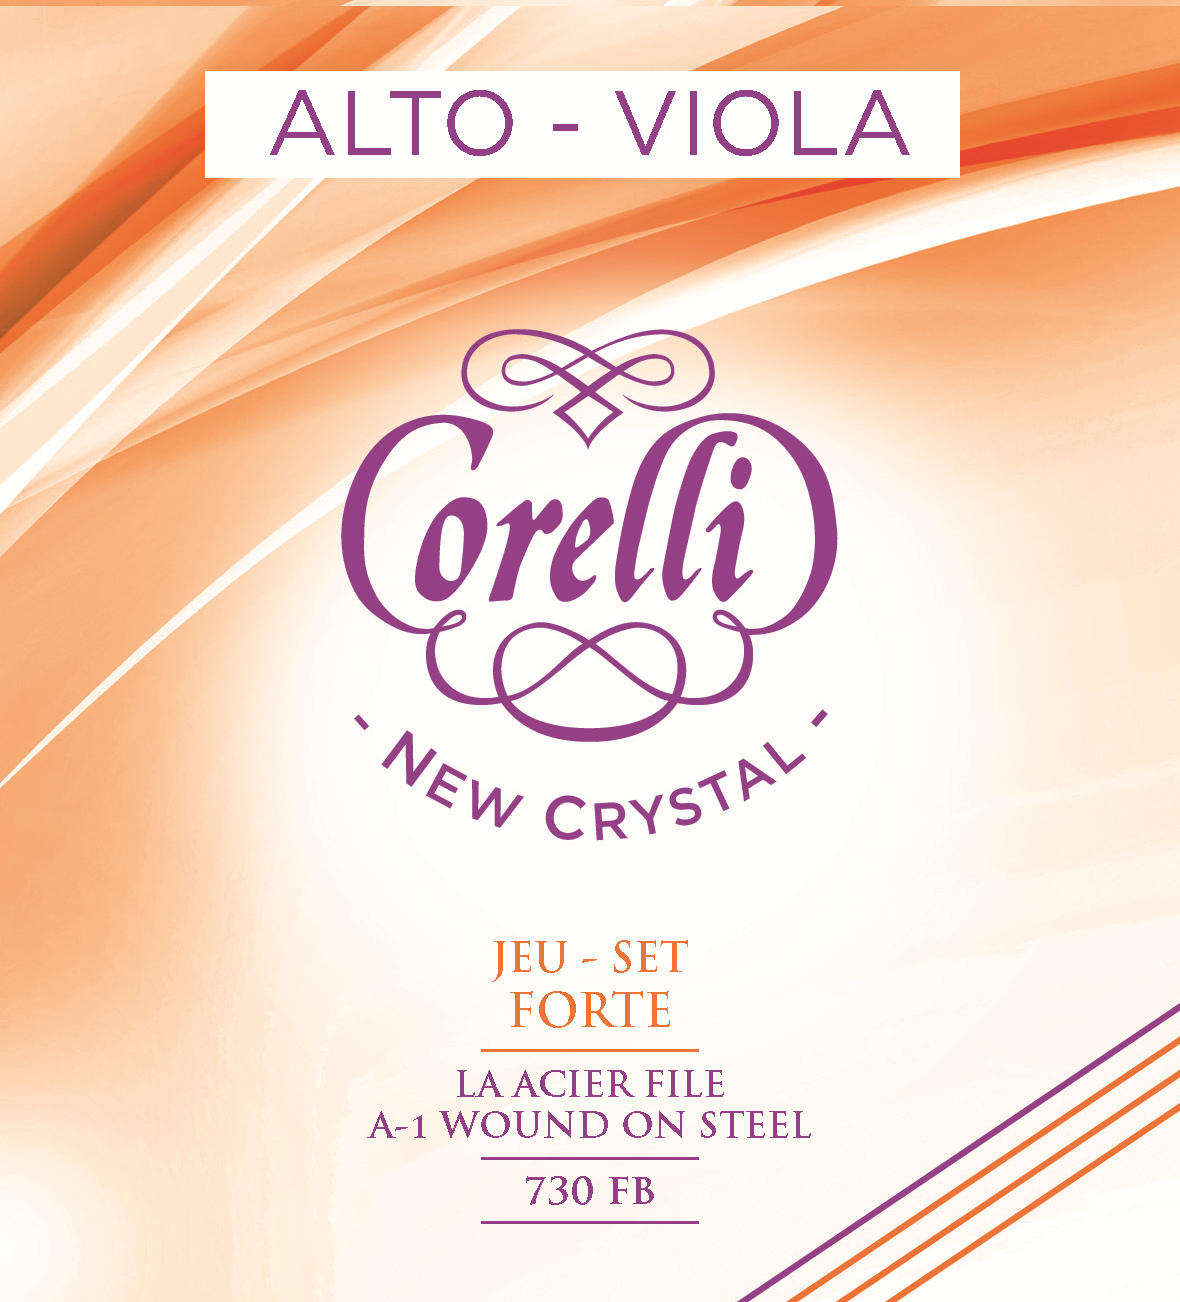 CORELLI NEW CRYSTAL FORTE 730FB ALTO